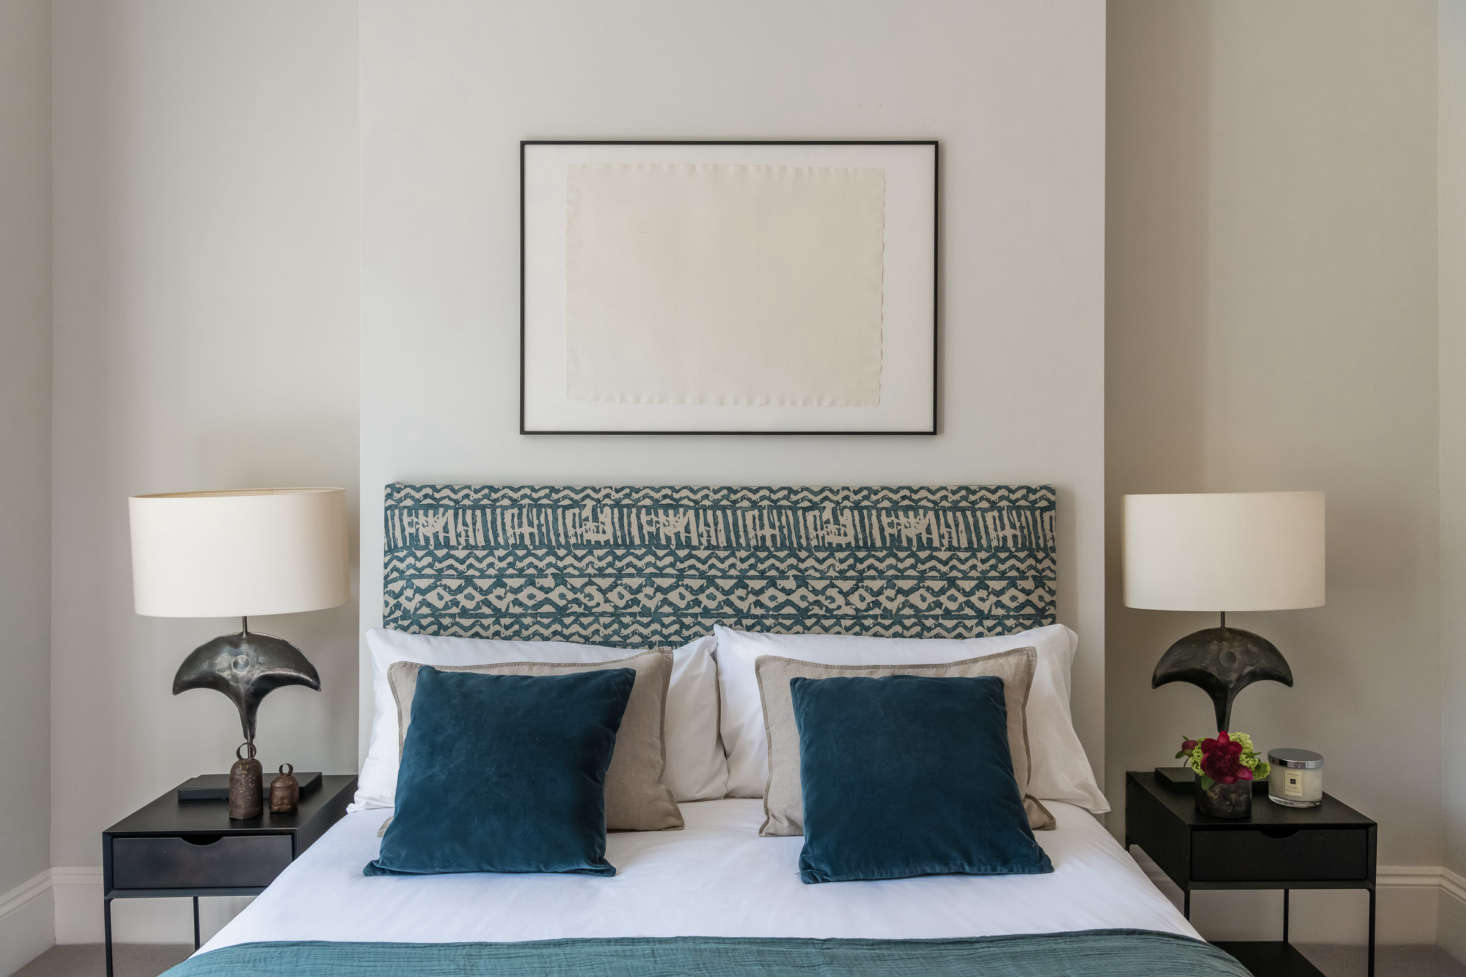 """Olivia and her boyfriend's bedroom. Olivia stapled Khari blue linen fabric by Mark Alexander to an old headboard that once belonged to her mother. """"I spent two months with different fabrics draped over the bed, testing out the styles,"""" she shares. The Porta Romana lamps were scored at a sample sale; the bedside tables from La Redoute were purchased at a steep discount. The walls here are painted French Grey by Little Greene."""